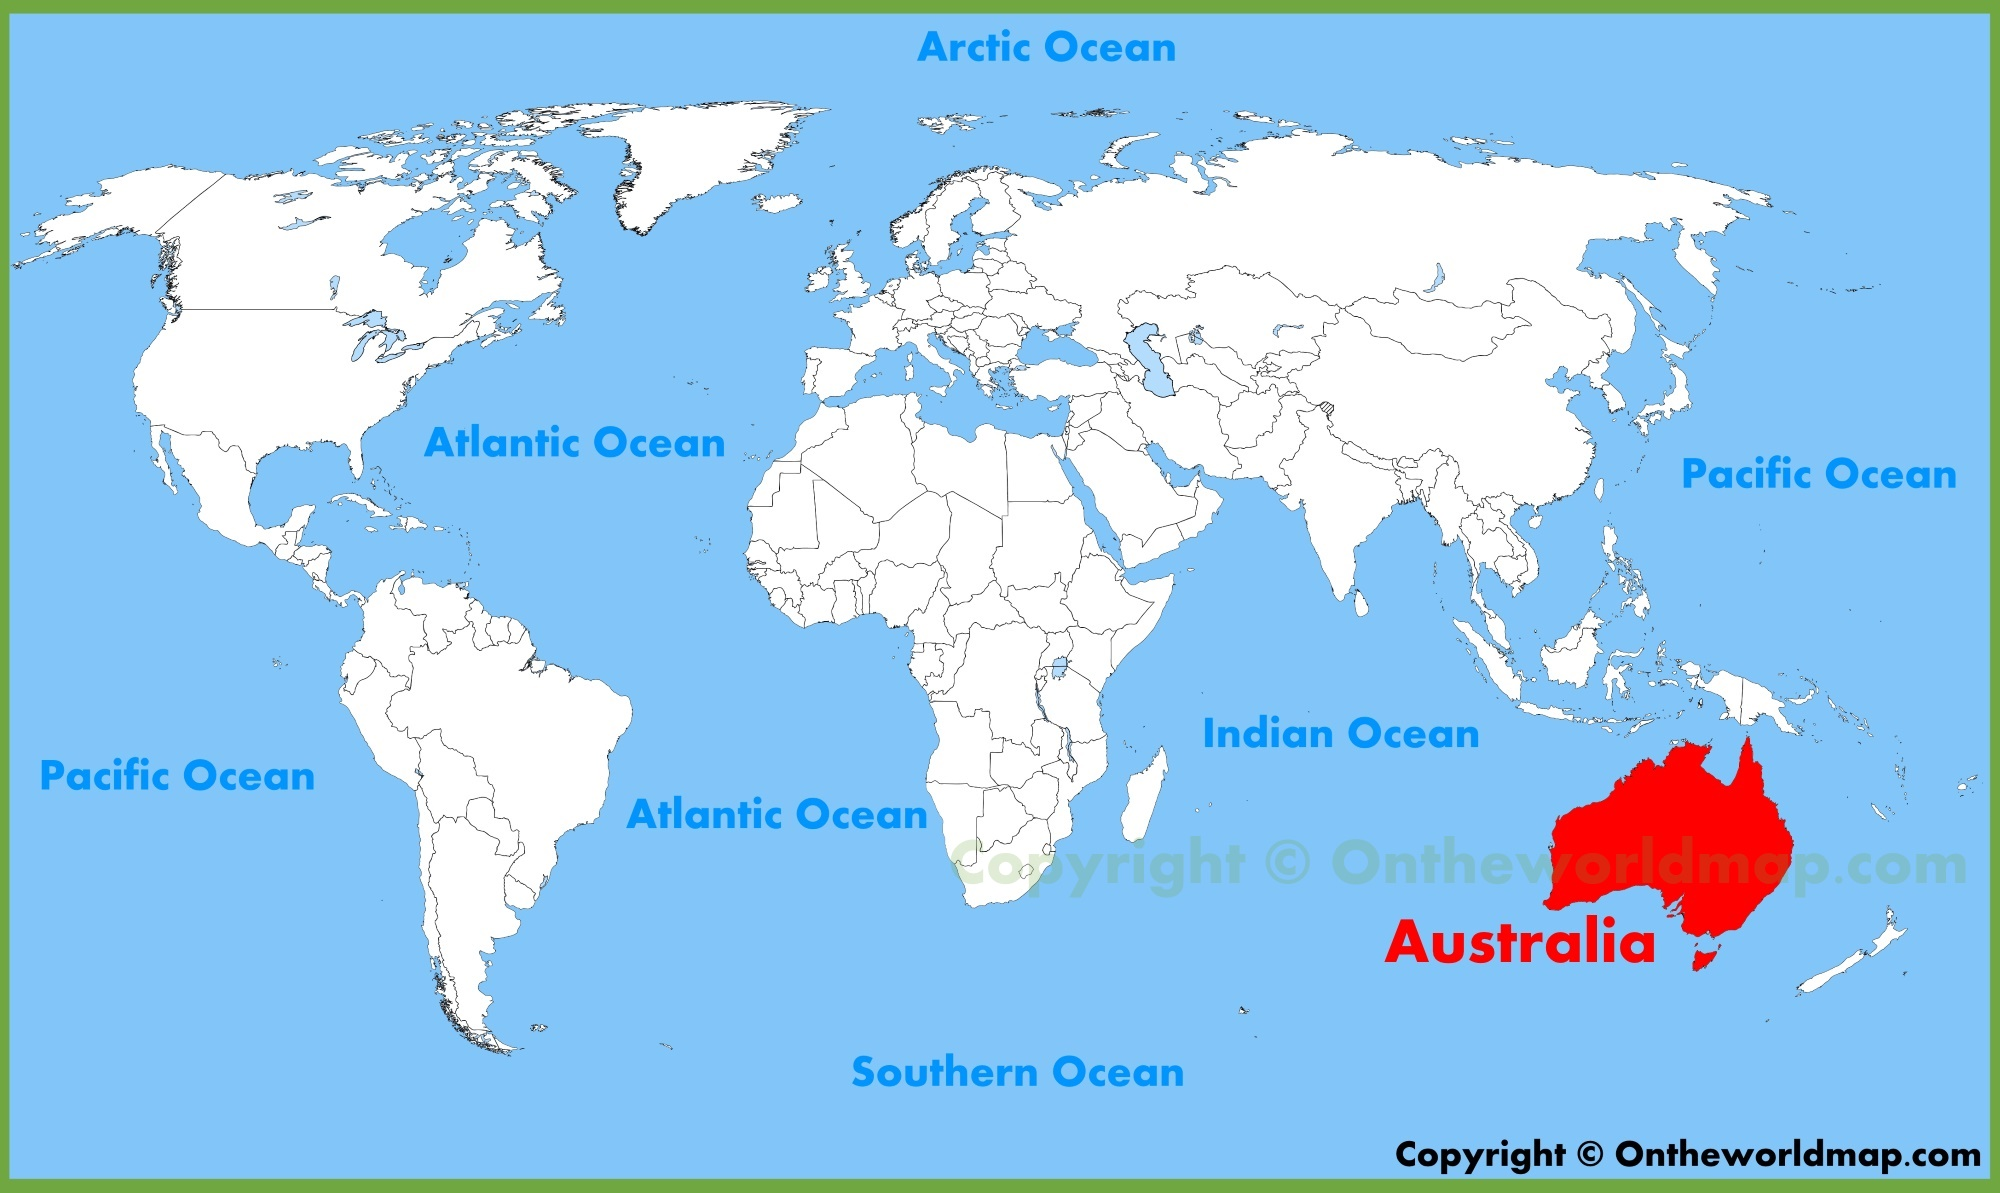 Australia Location On The World Map - Australian map of the world